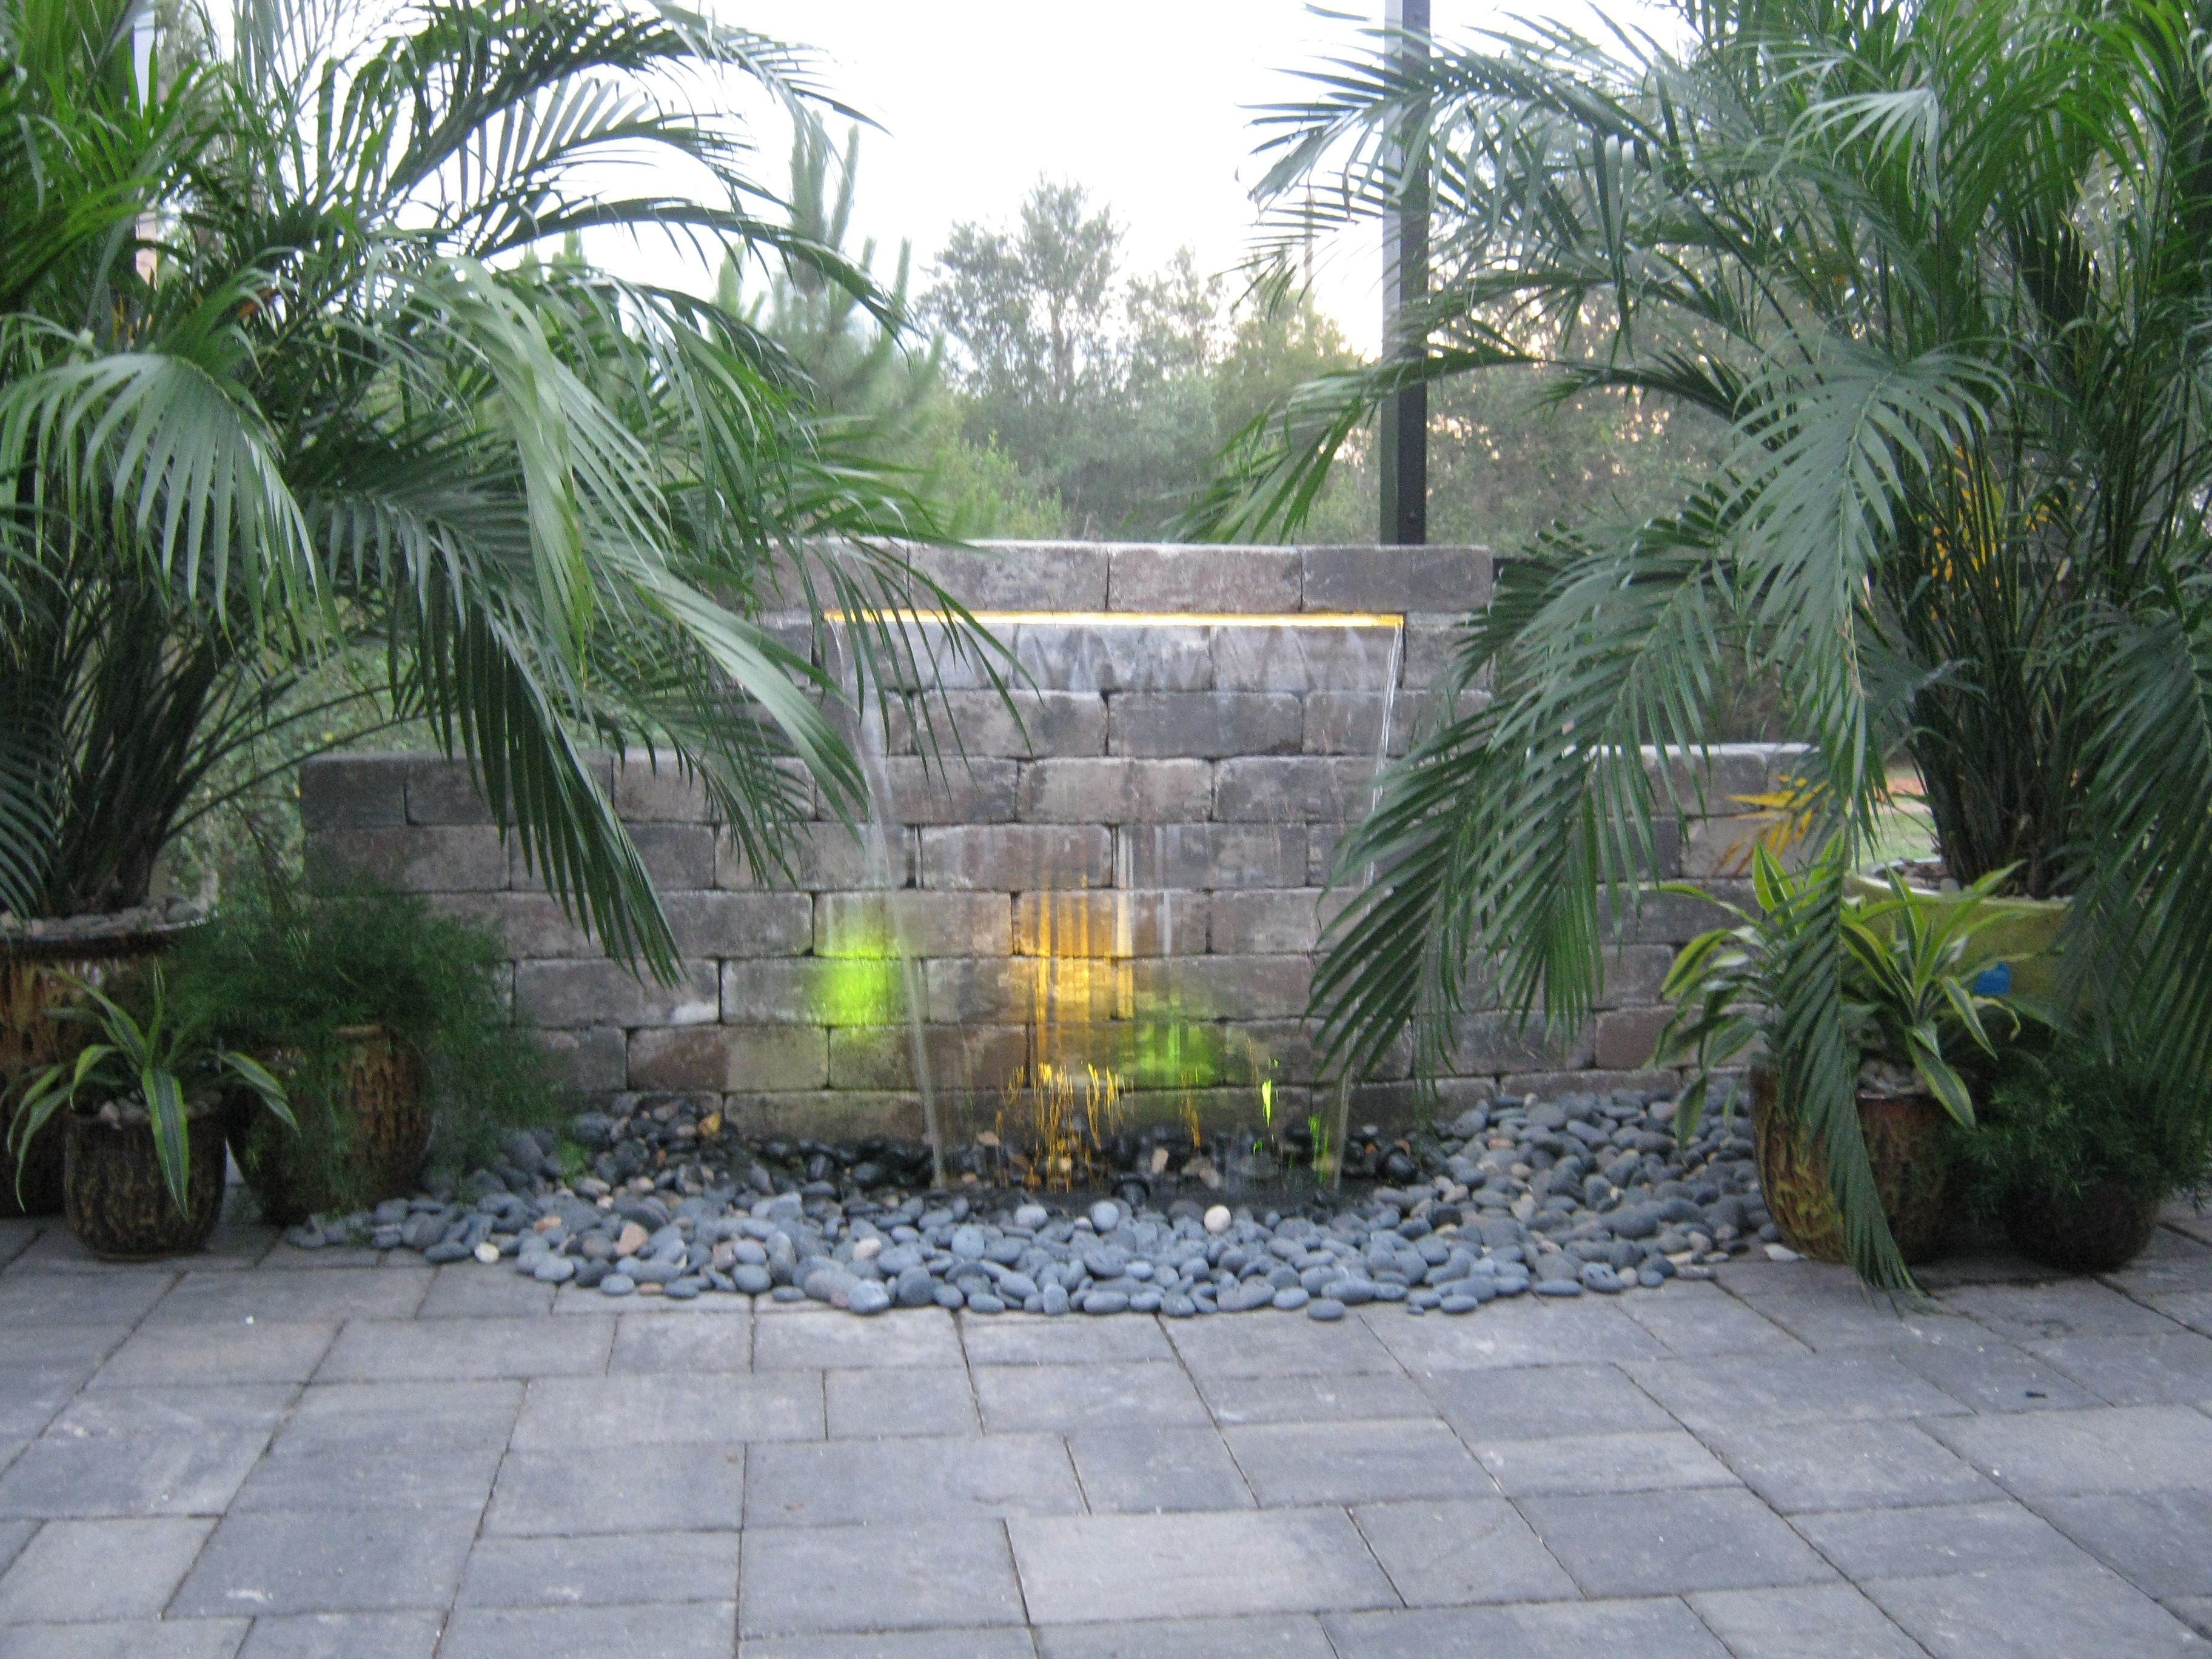 Water Features For Backyard pond-free water features - backyard getaway